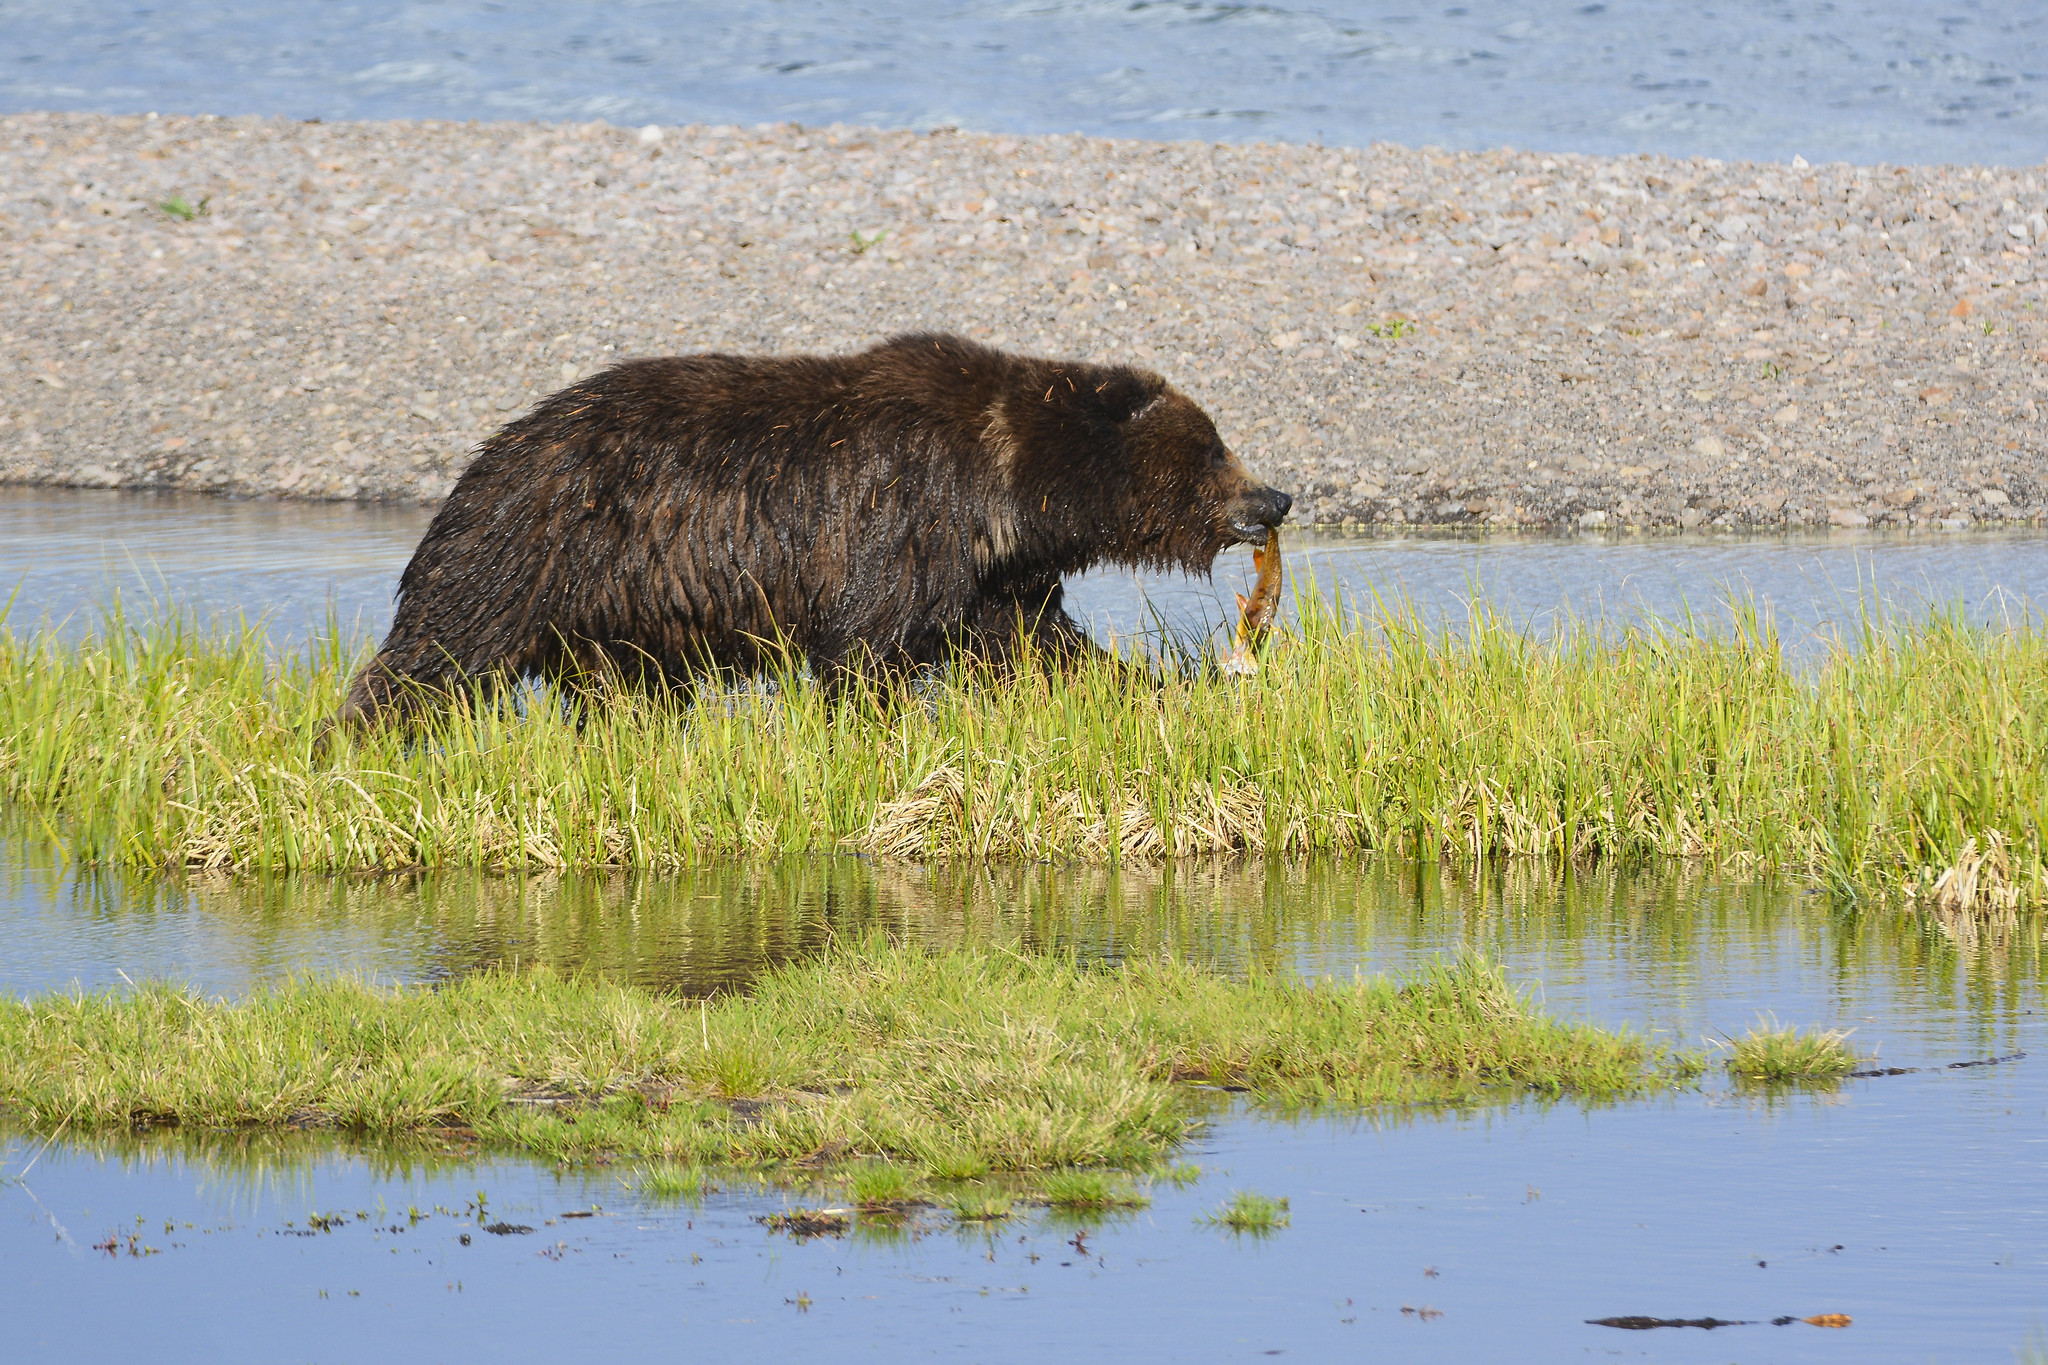 grizzly bear walking next to river carrying fish in its mouth